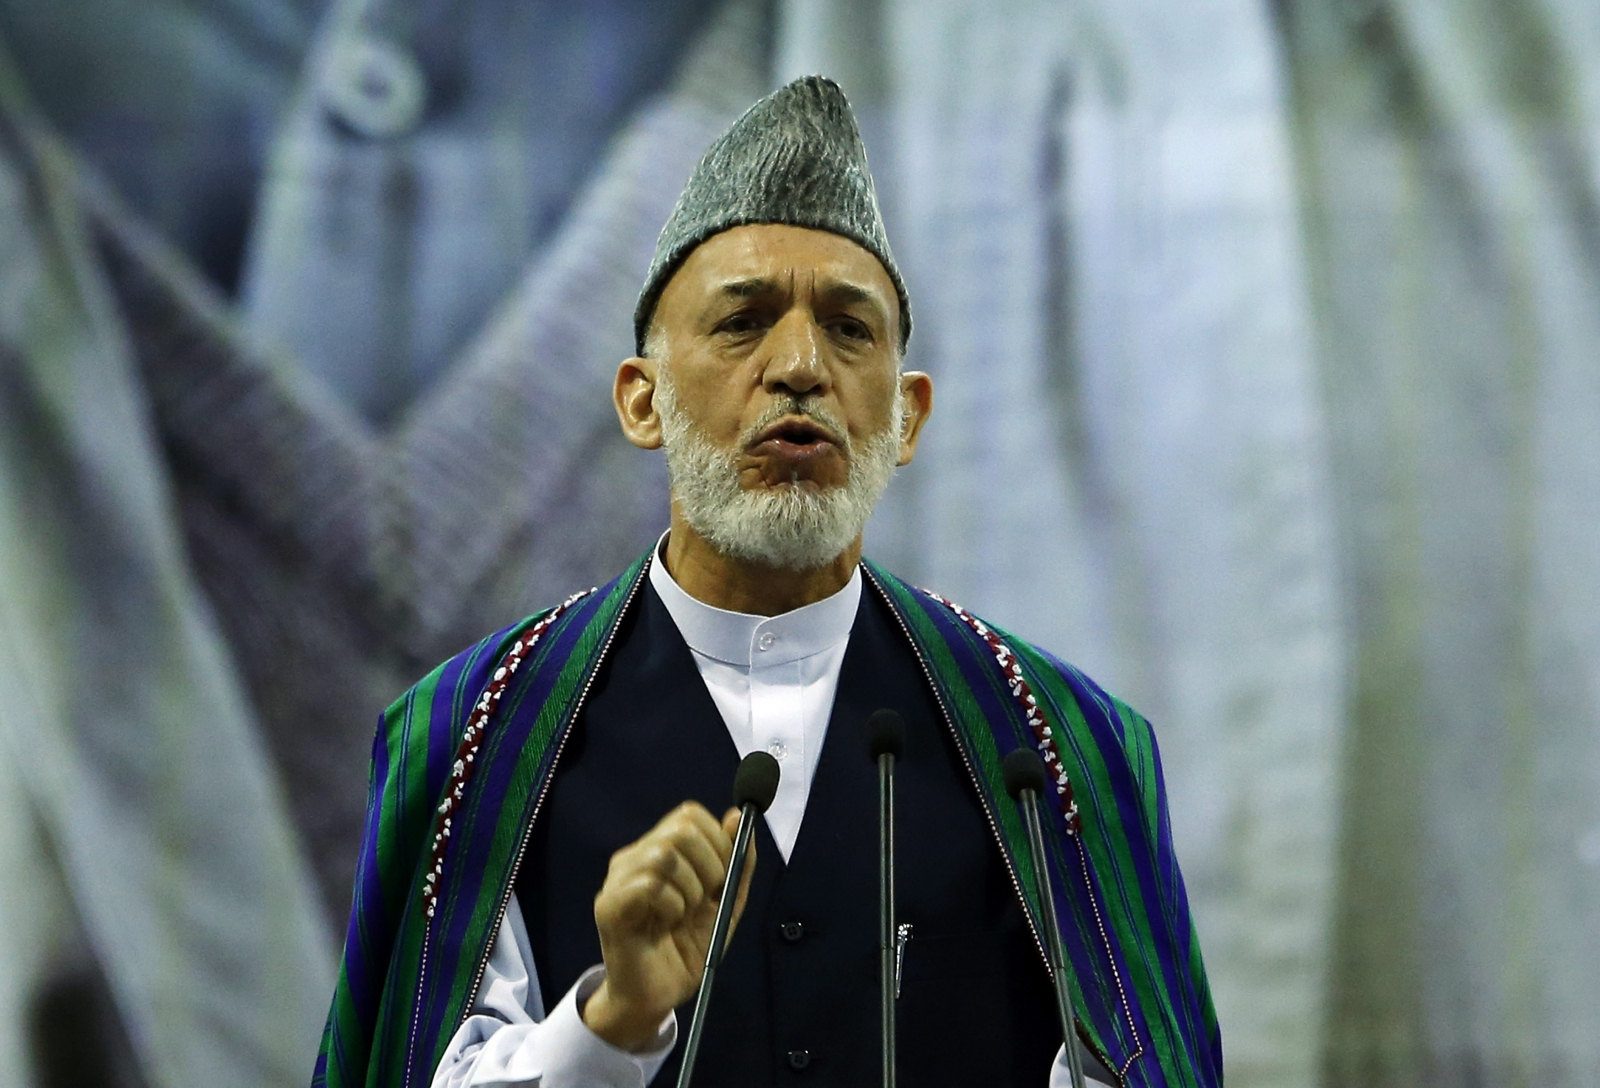 Hamid Karzai and the US